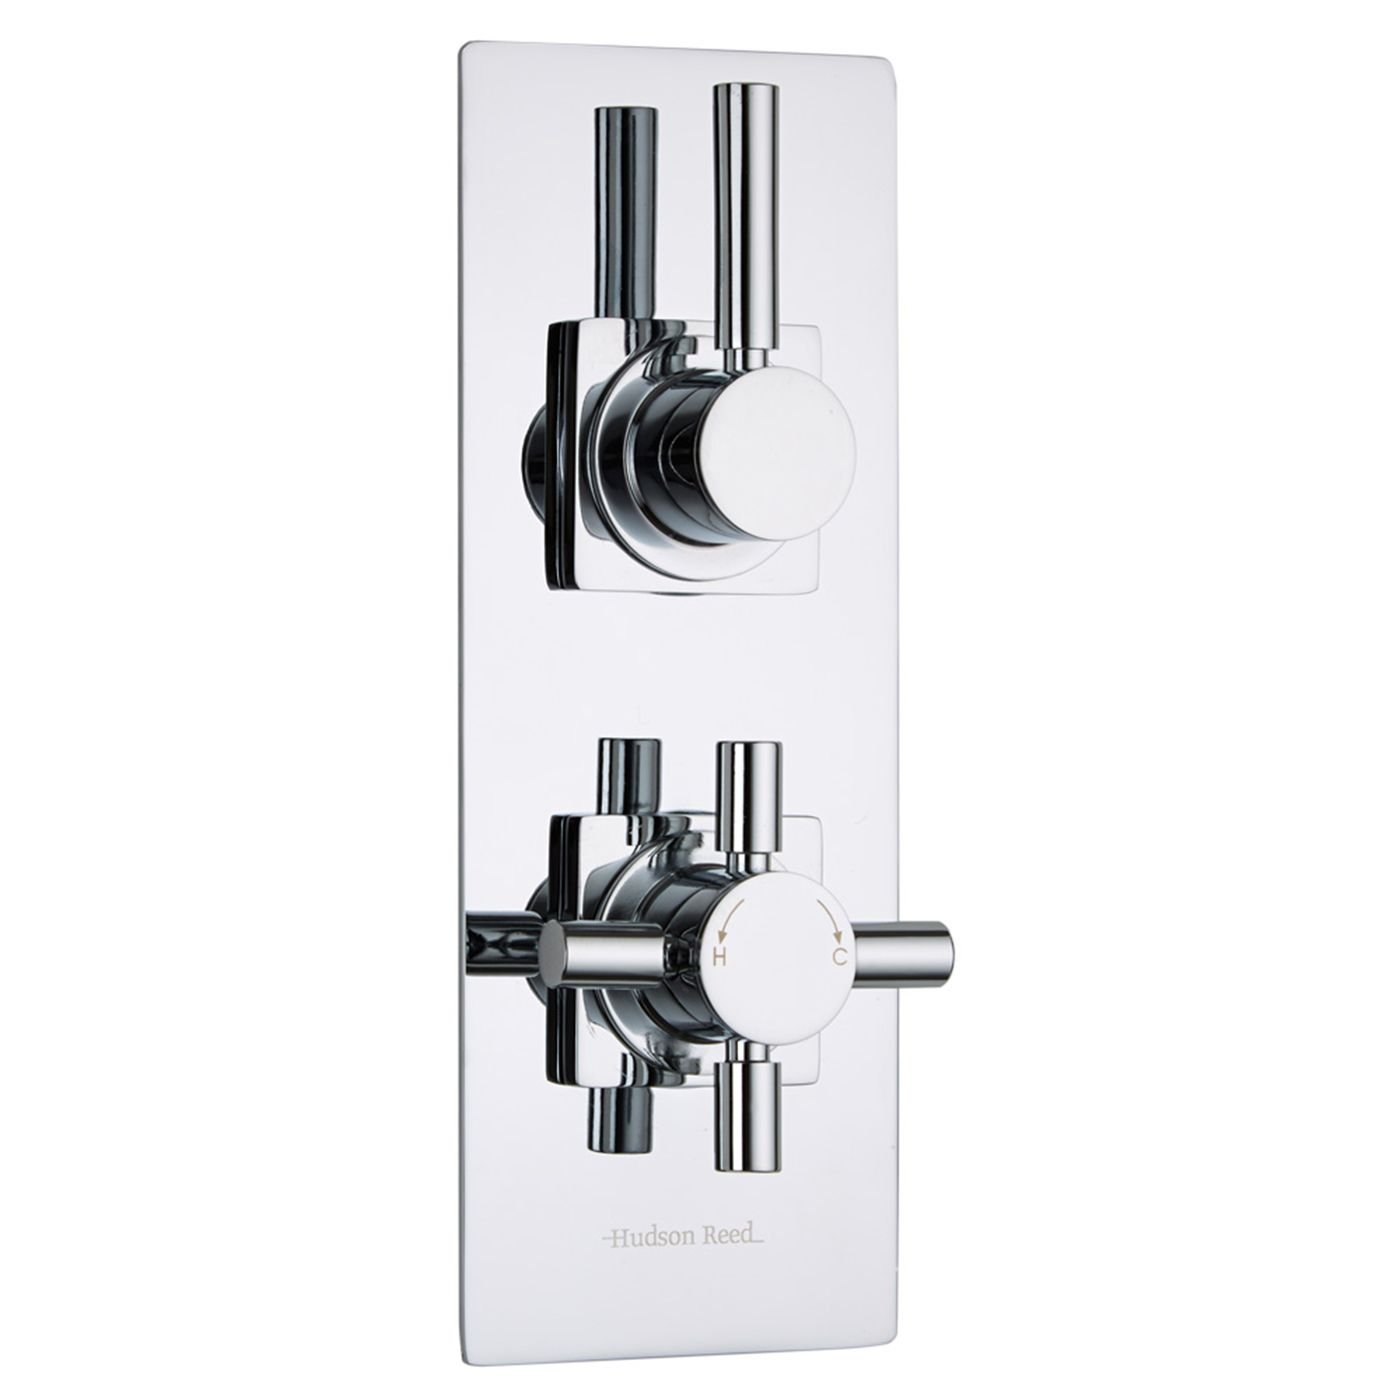 Hudson Reed - Tec Thermostatic 2 Outlet Twin Shower Faucet Diverter Valve in Chrome Plated - Concealed Thermostat - Slim Trim Plate & Round Lever Control - Solid Brass Body